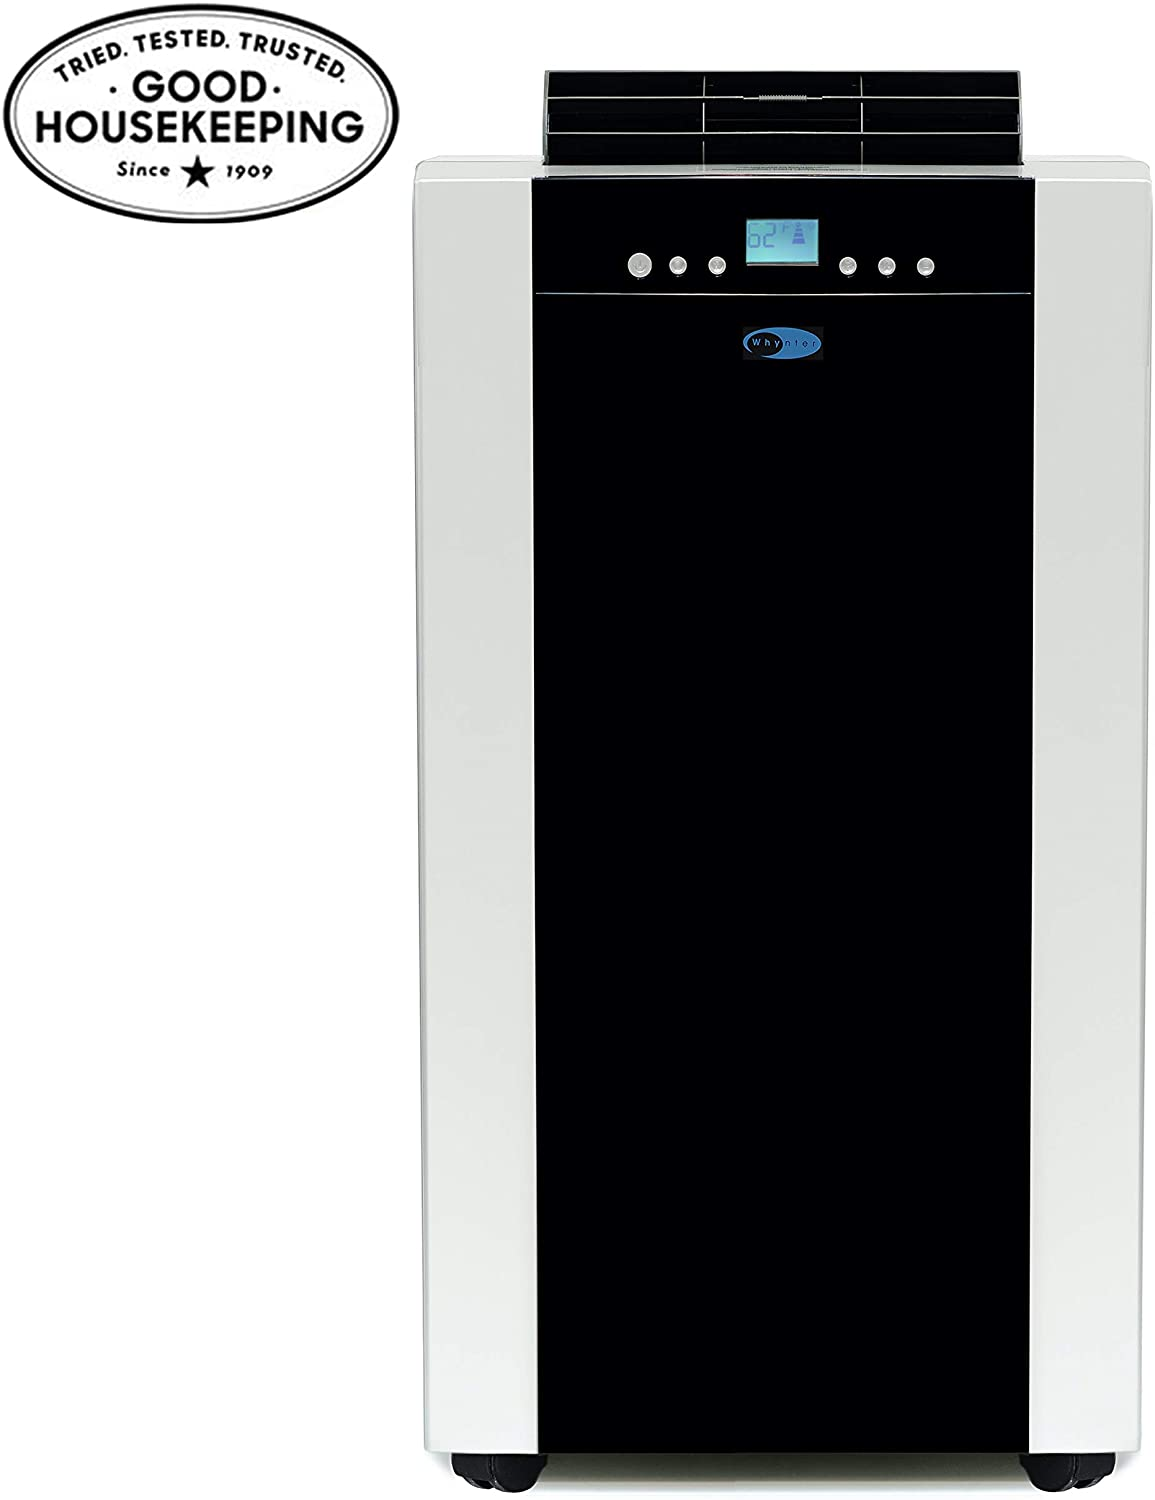 Whynter ARC-14S 14,000 BTU Dual Hose Portable Air Conditioner, Dehumidifier, Fan with Activated Carbon Filter plus Storage bag for Rooms up to 500 sq ft